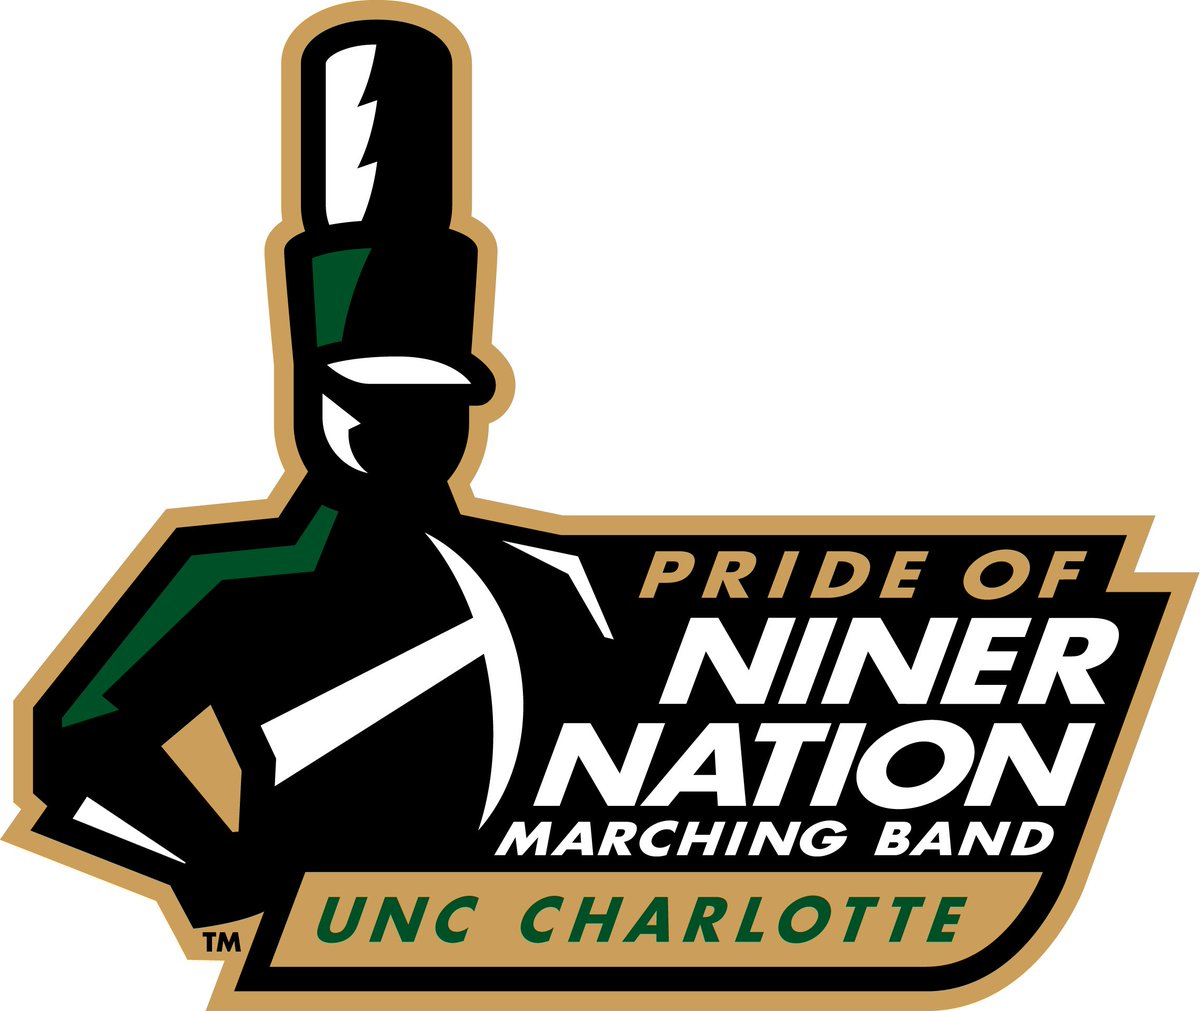 Unc Charlotte Pnnmb On Twitter Pride Of Niner Nation Marching